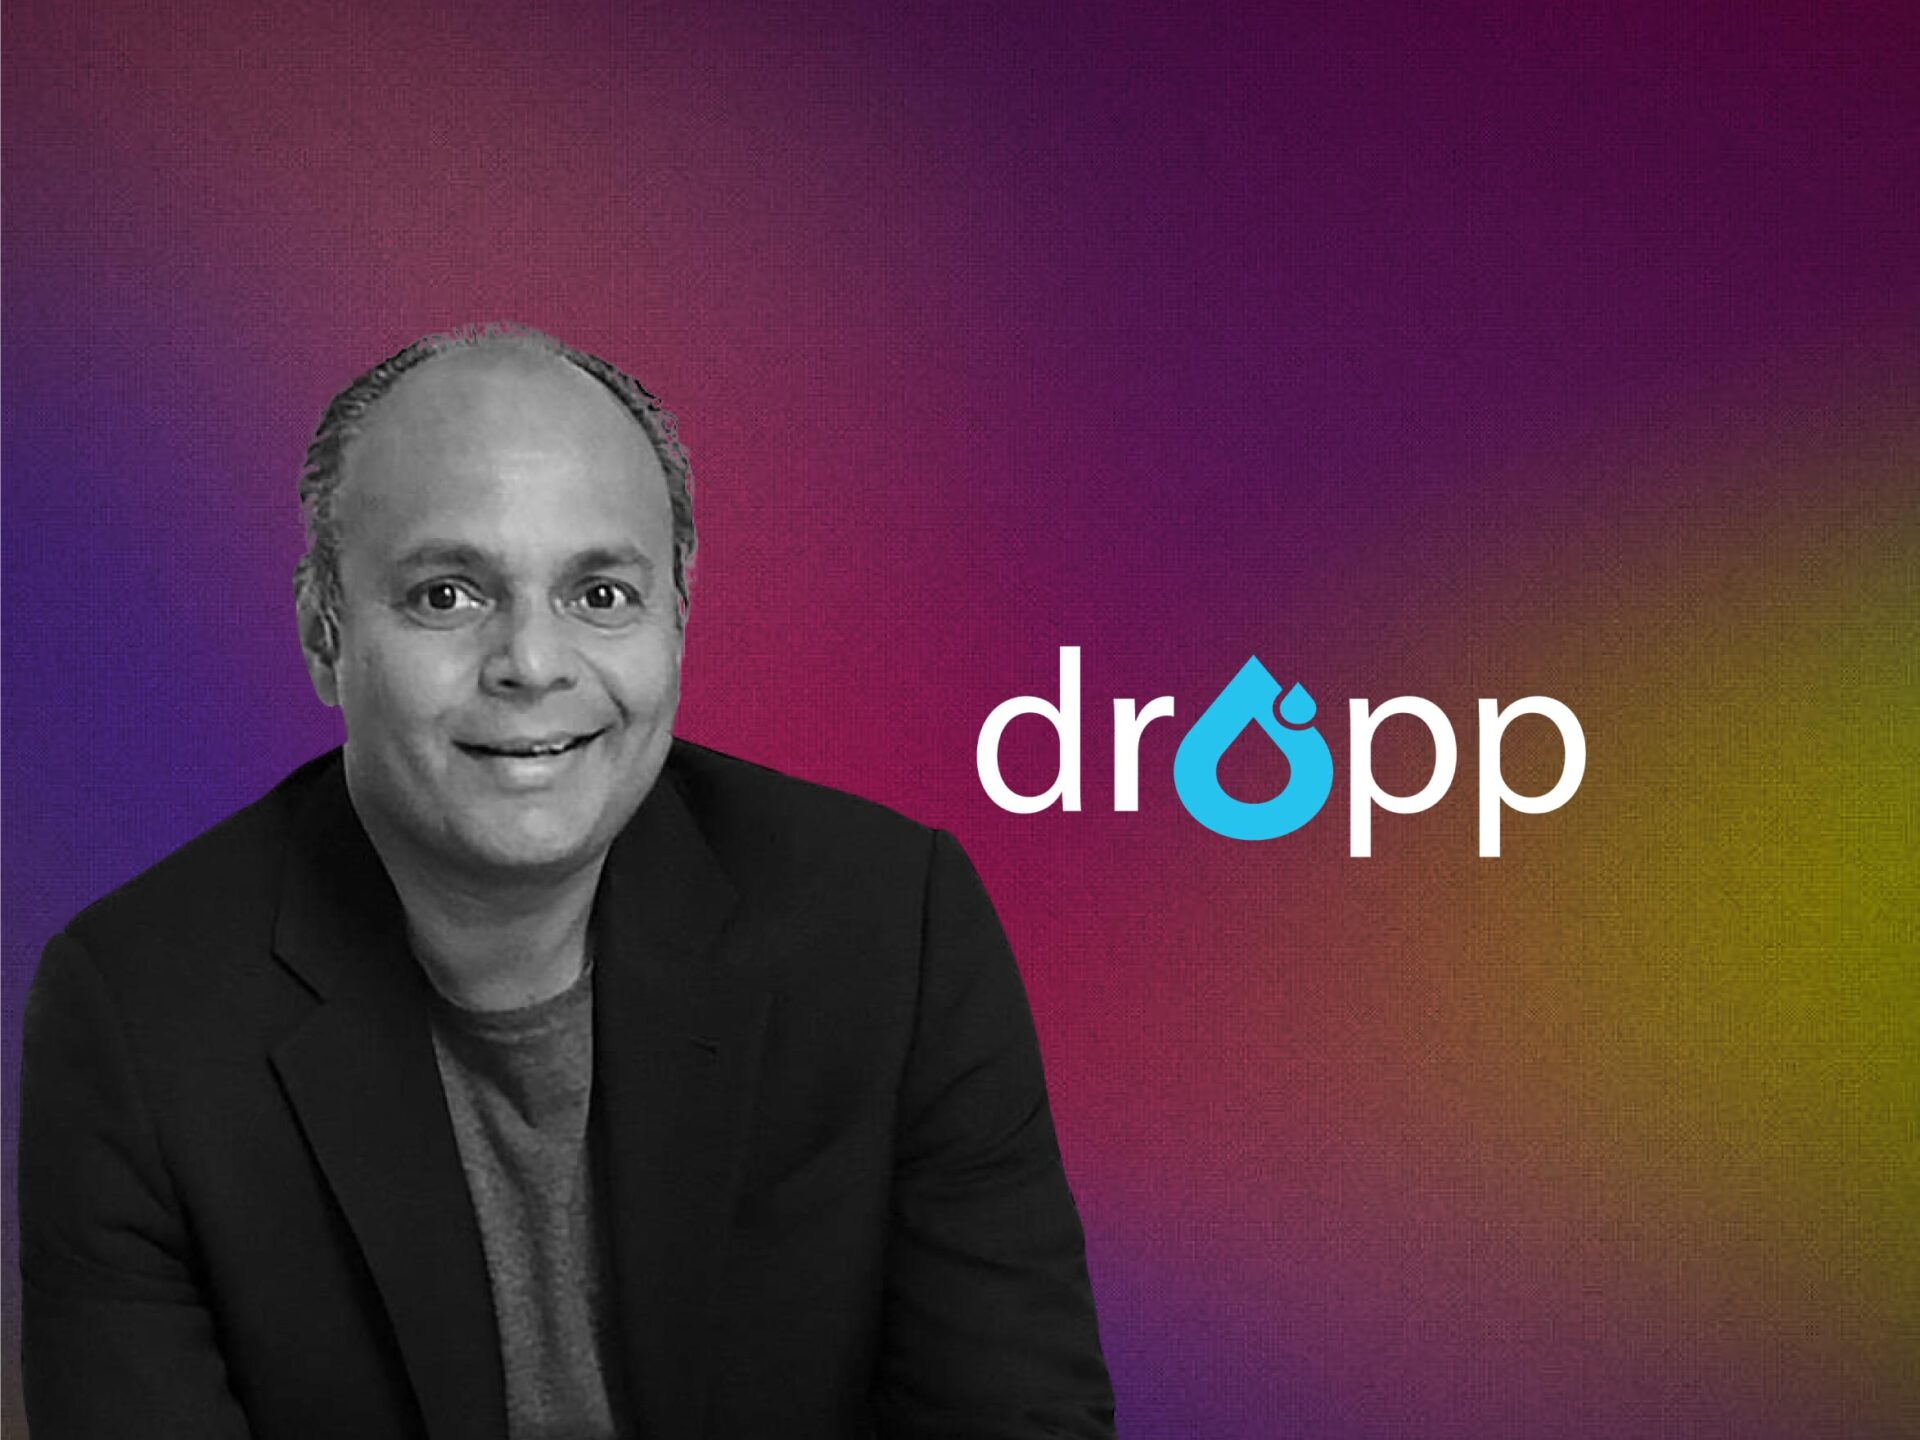 Global Fintech Interview with Sushil Prabhu, CEO and Chairman at Dropp